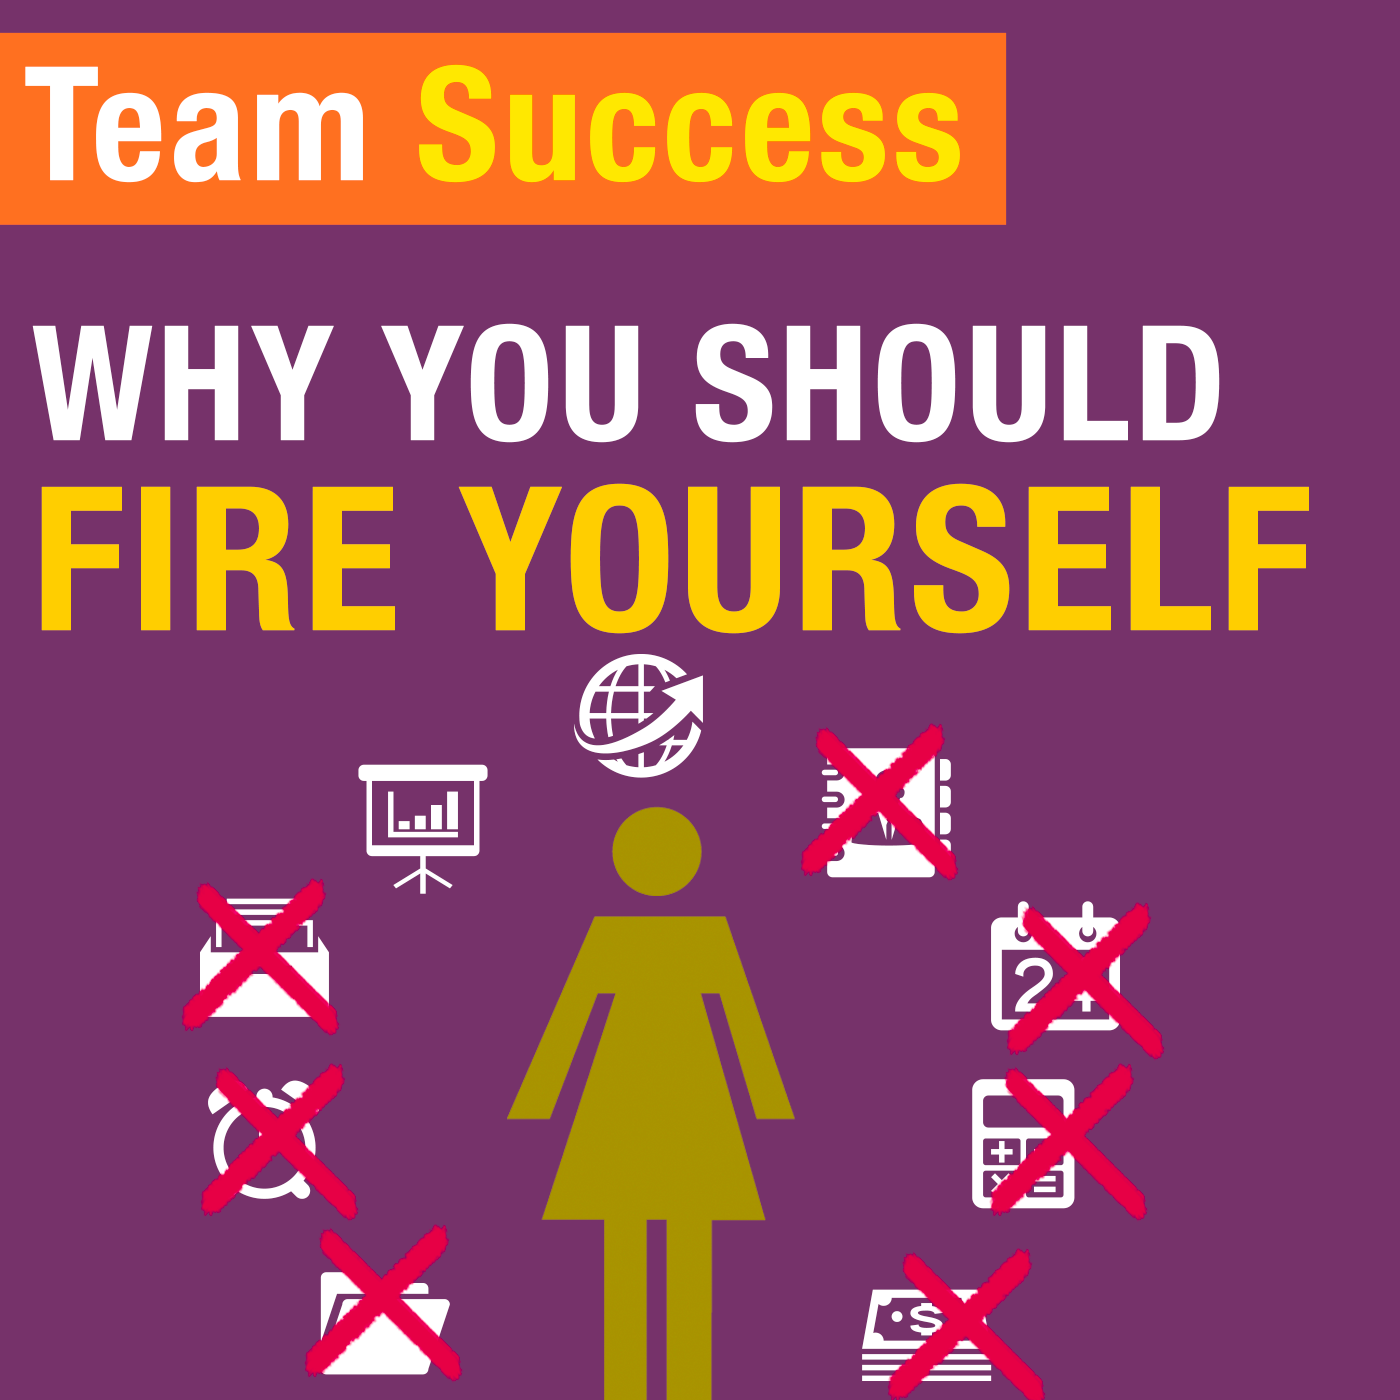 Why You Should Fire Yourself